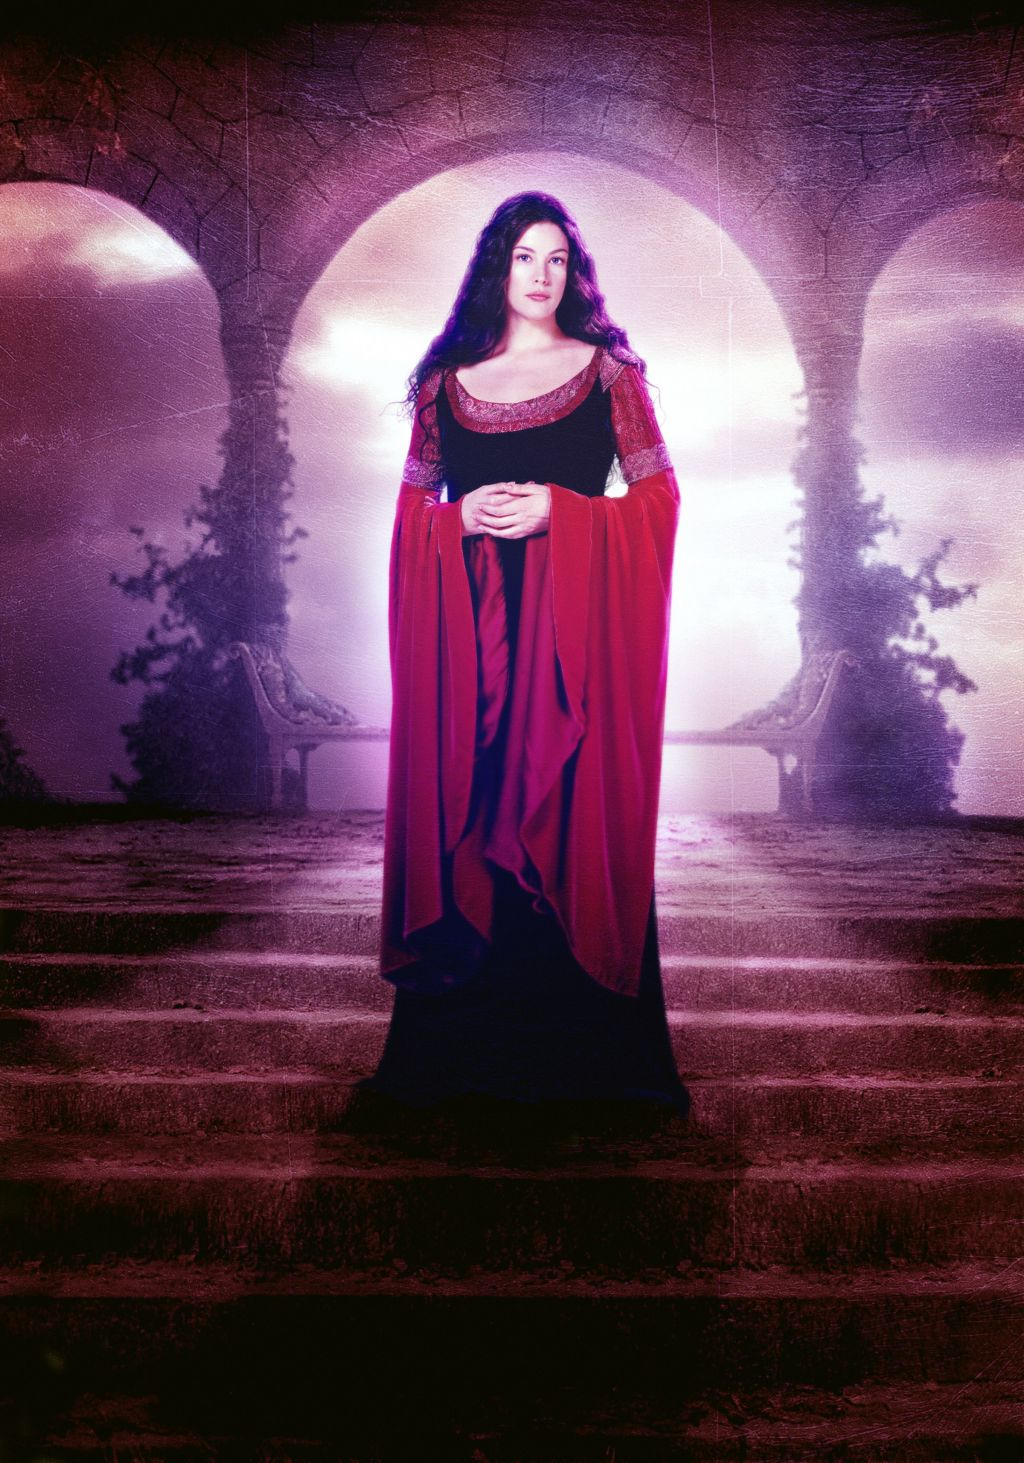 LORD OF THE RINGS QUOTES ARWEN